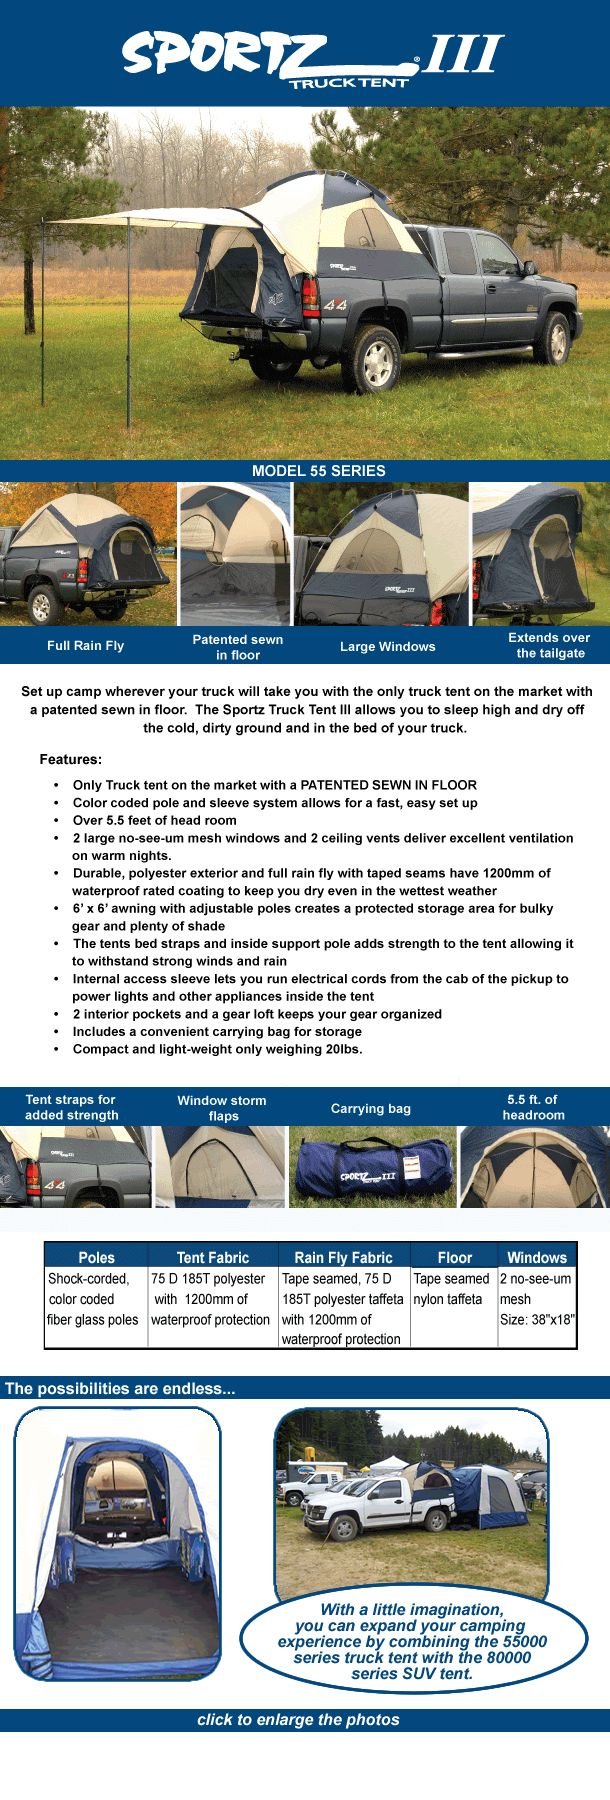 truck tent. Id like to have one...and a truck lol